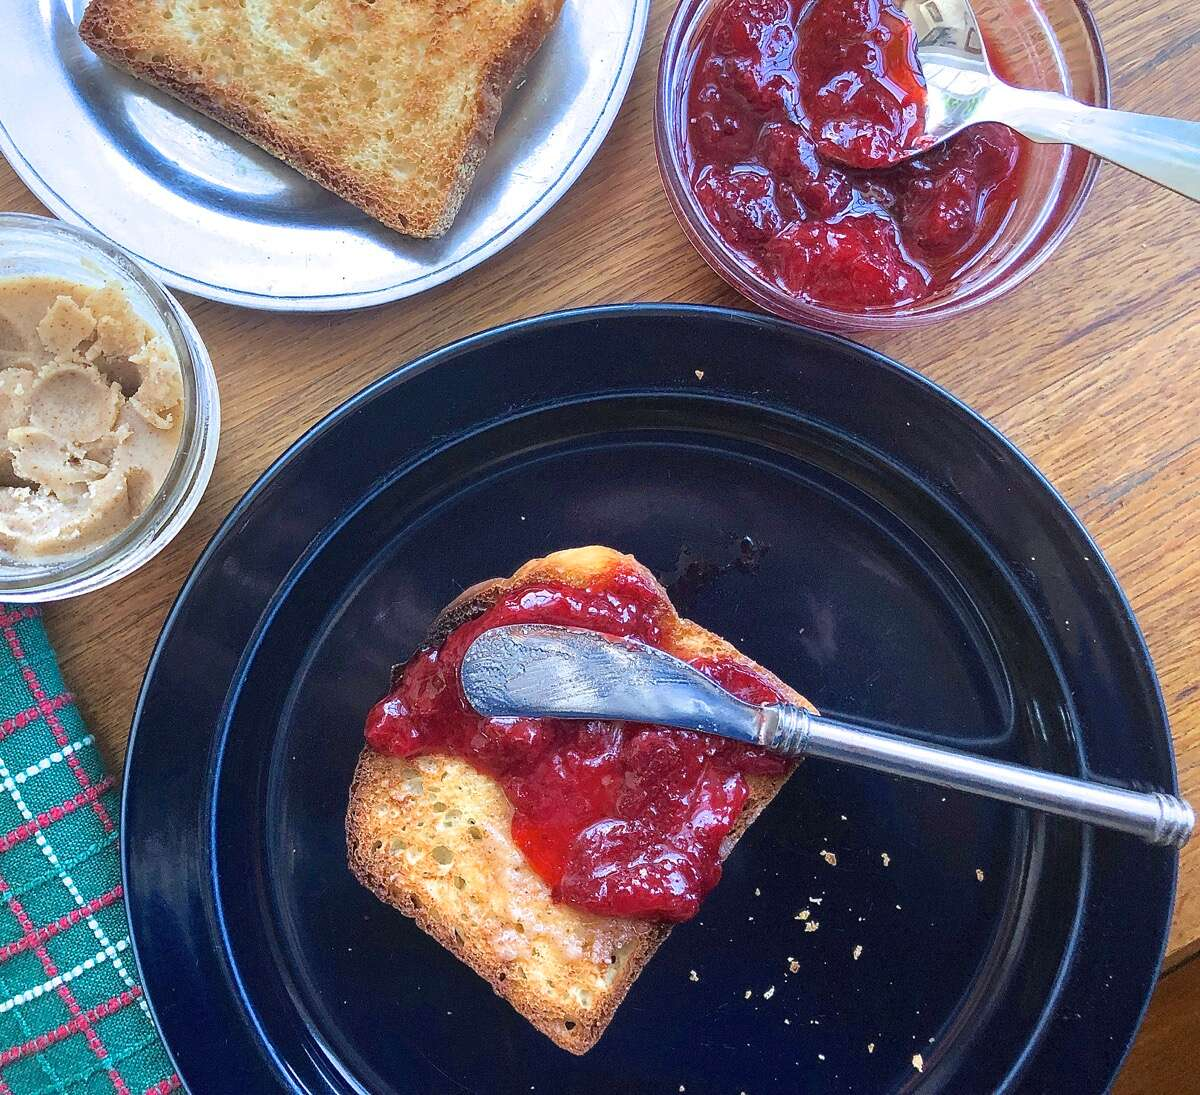 Toast on a plate, spread with butter and strawberry jam.